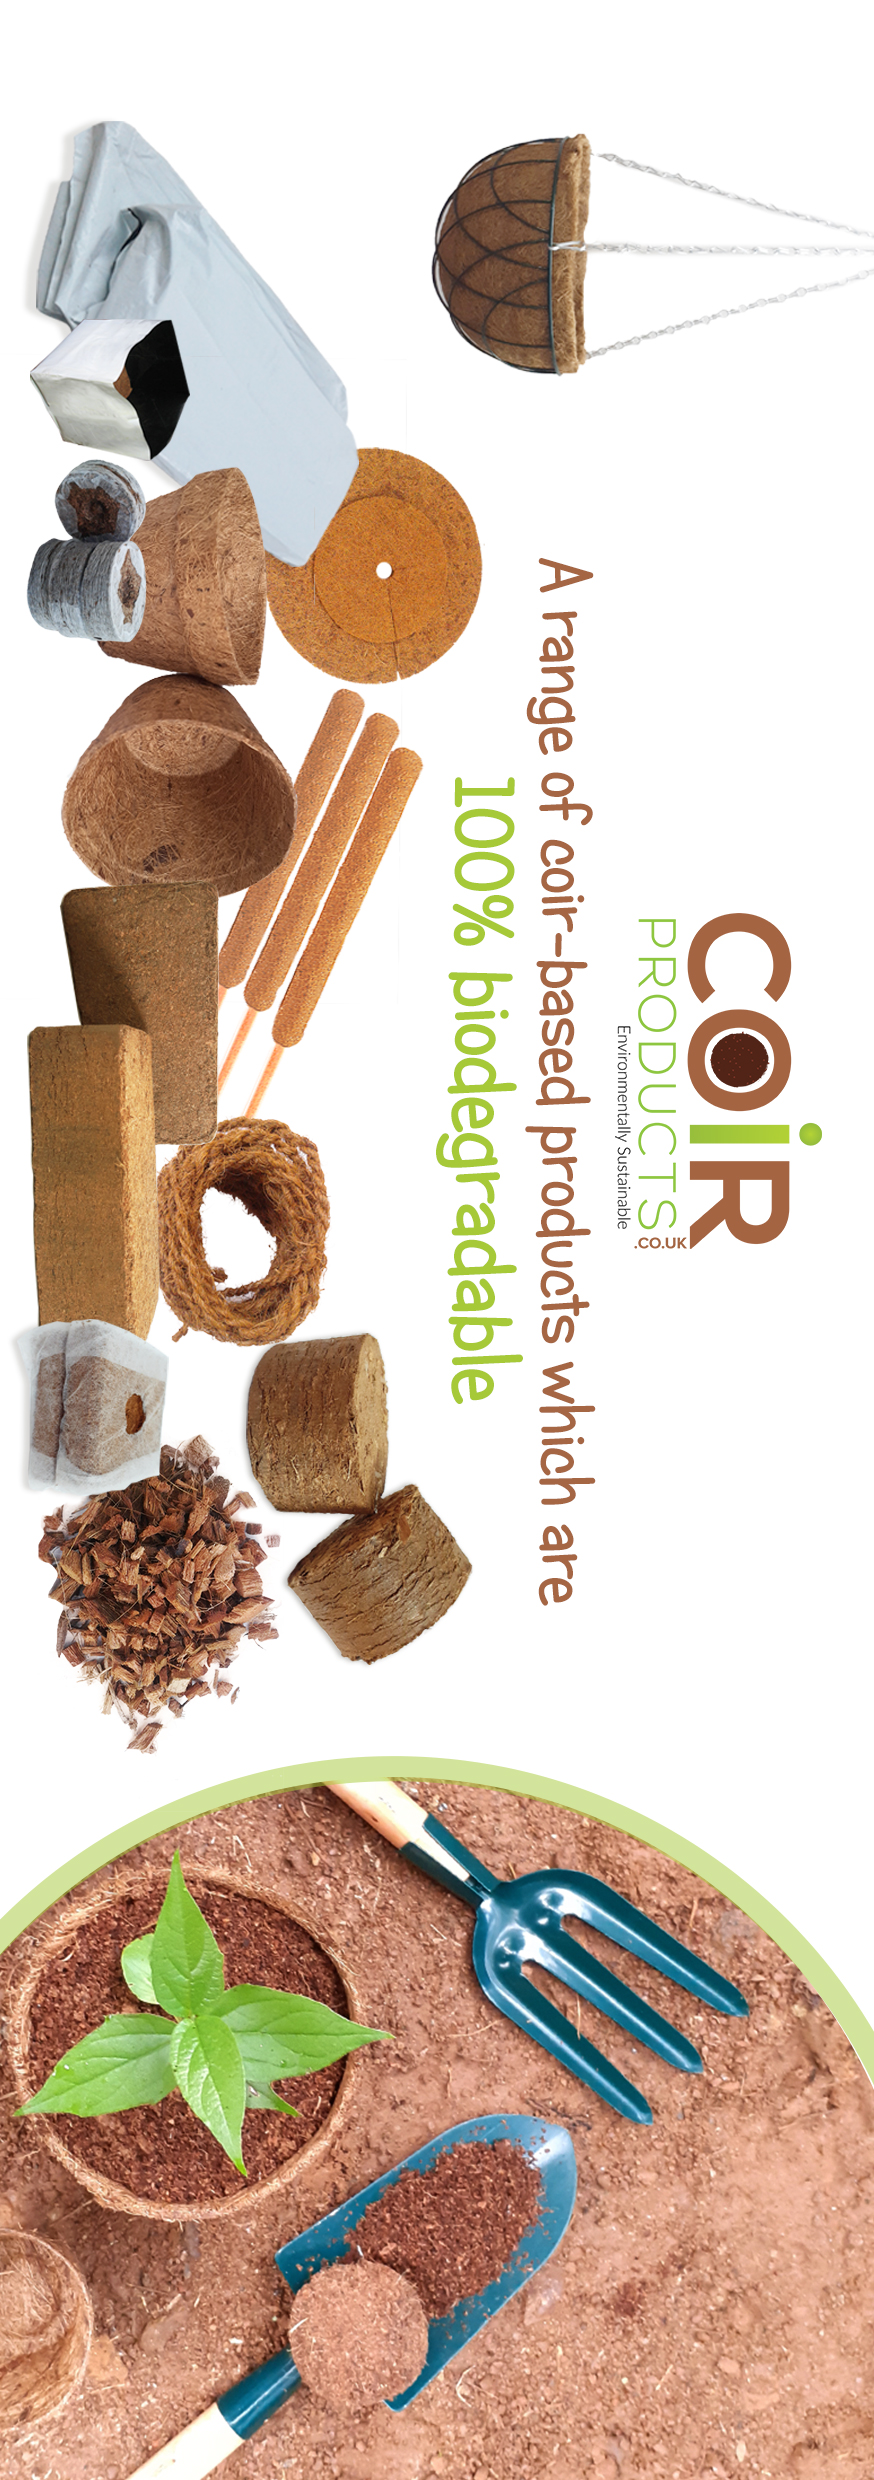 An innovative range of coir-based products under one platform